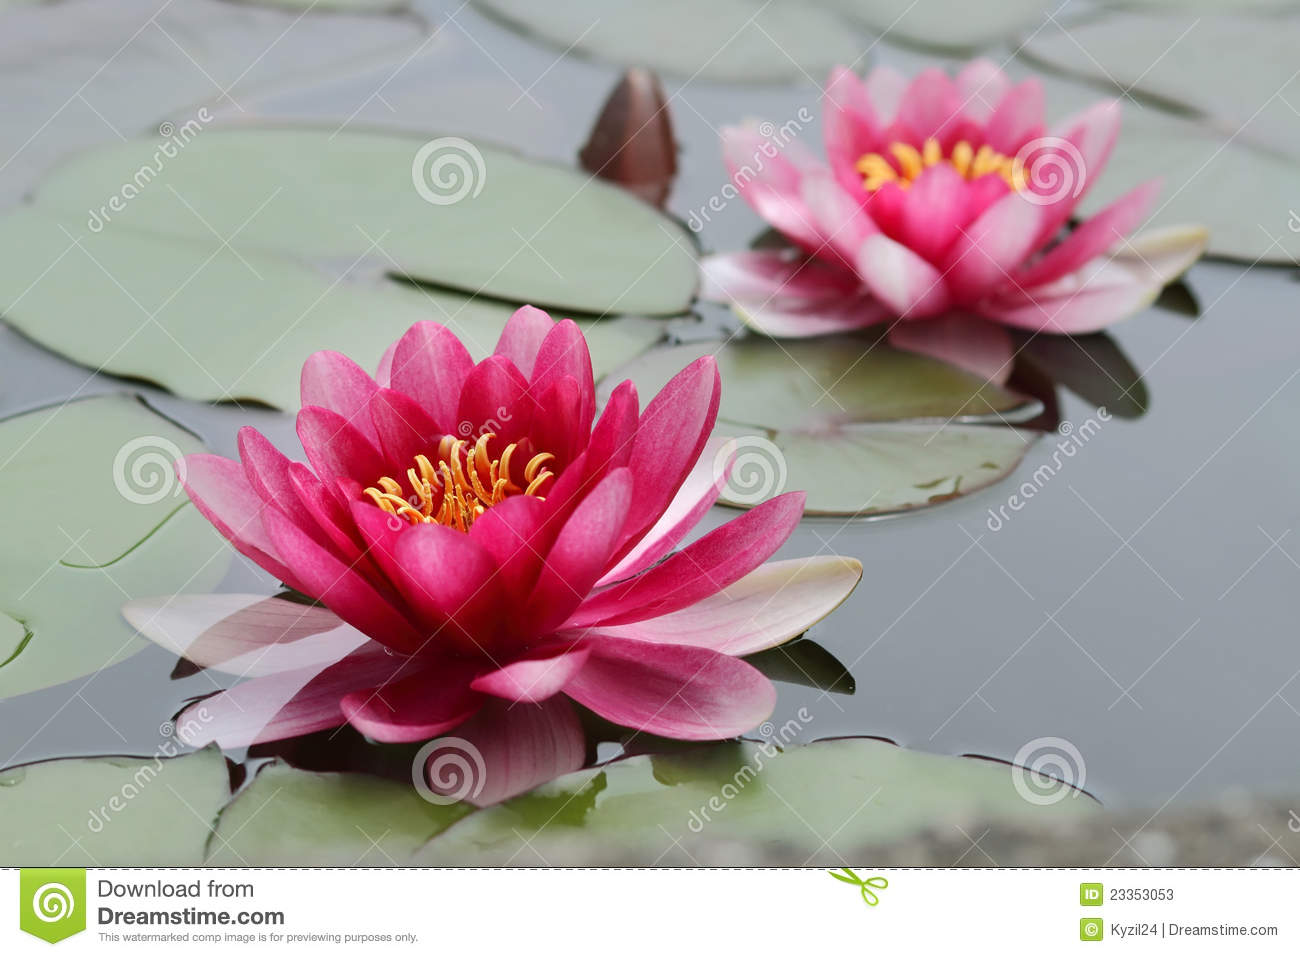 lotus flowers stock photo  image, Natural flower